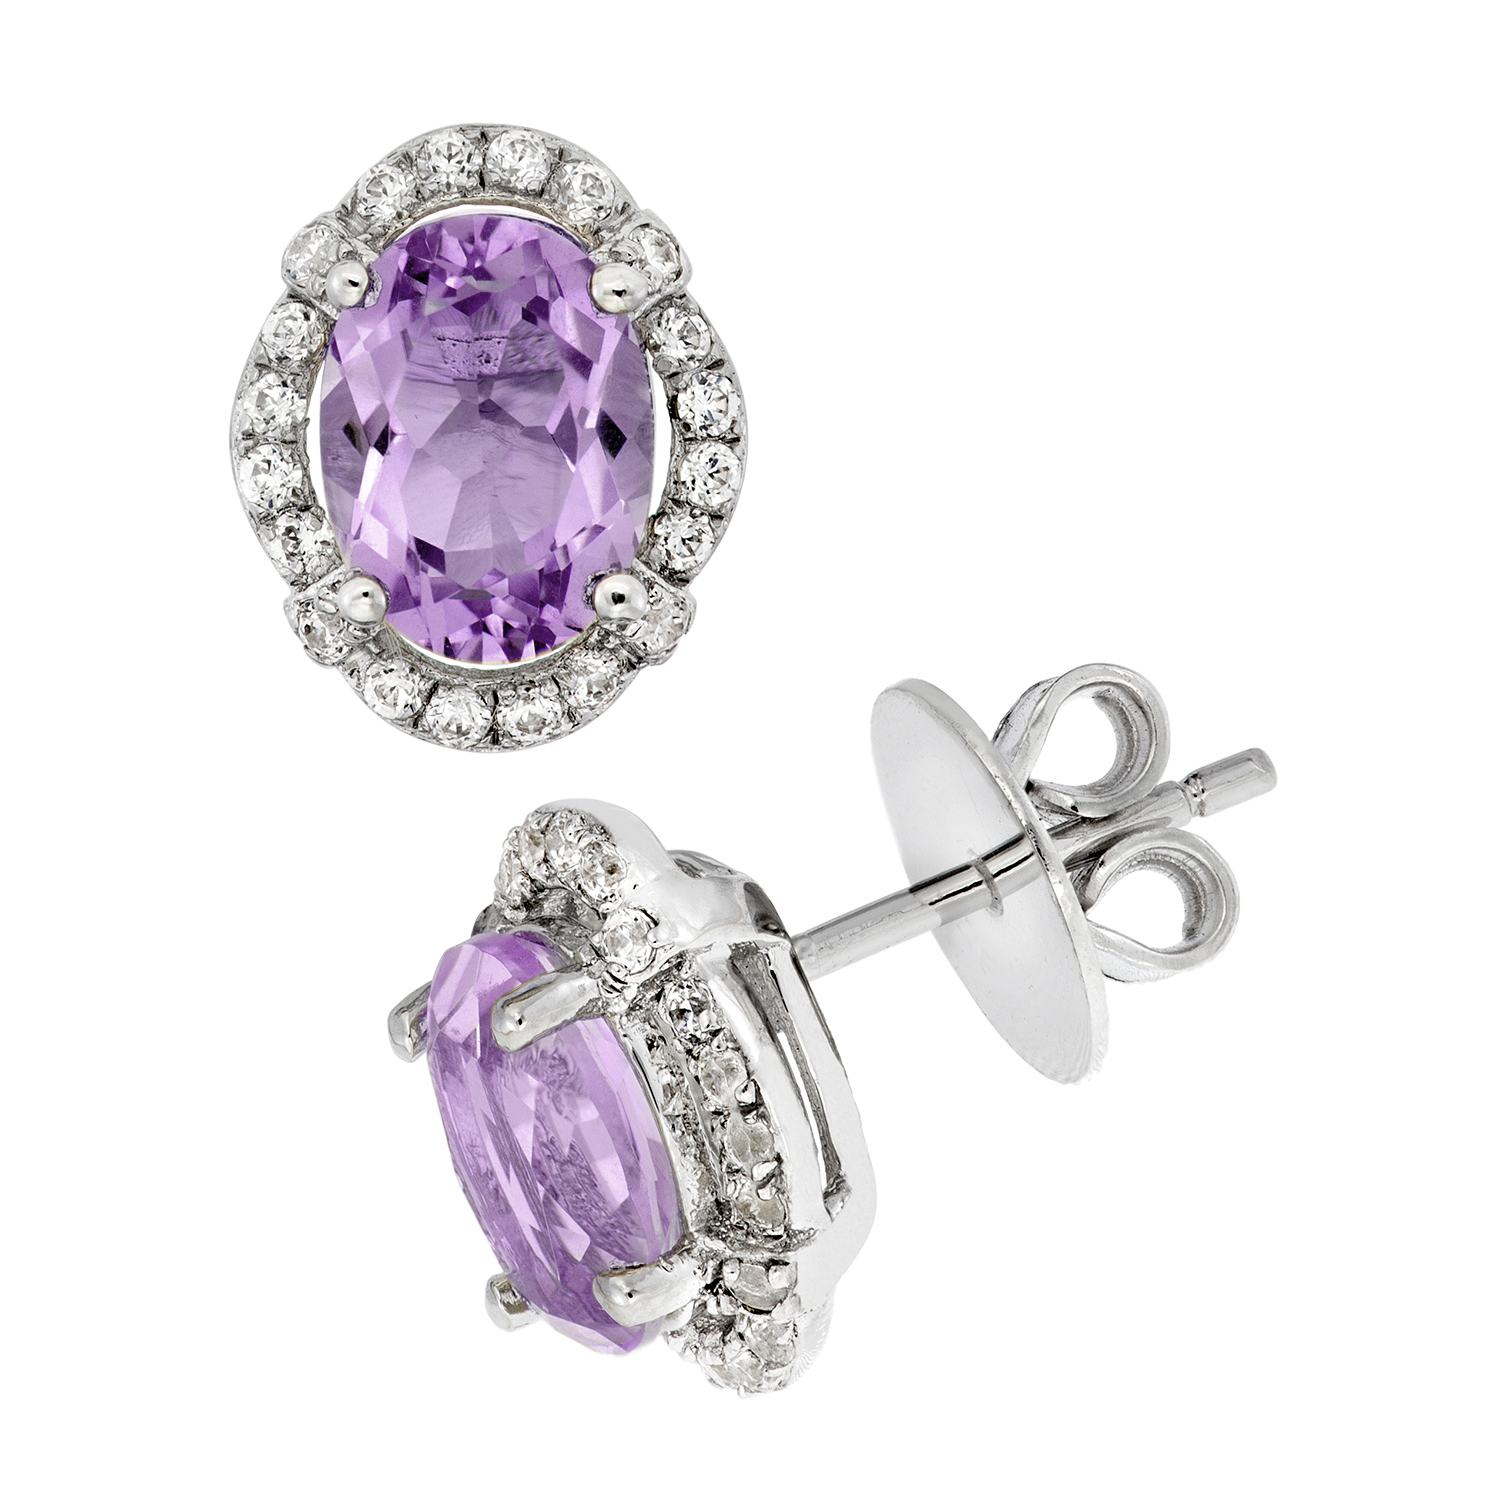 Platinum-Plated-Sterling-Silver-Oval-Double-Cut-Gemstone-Pave-CZ-Earring